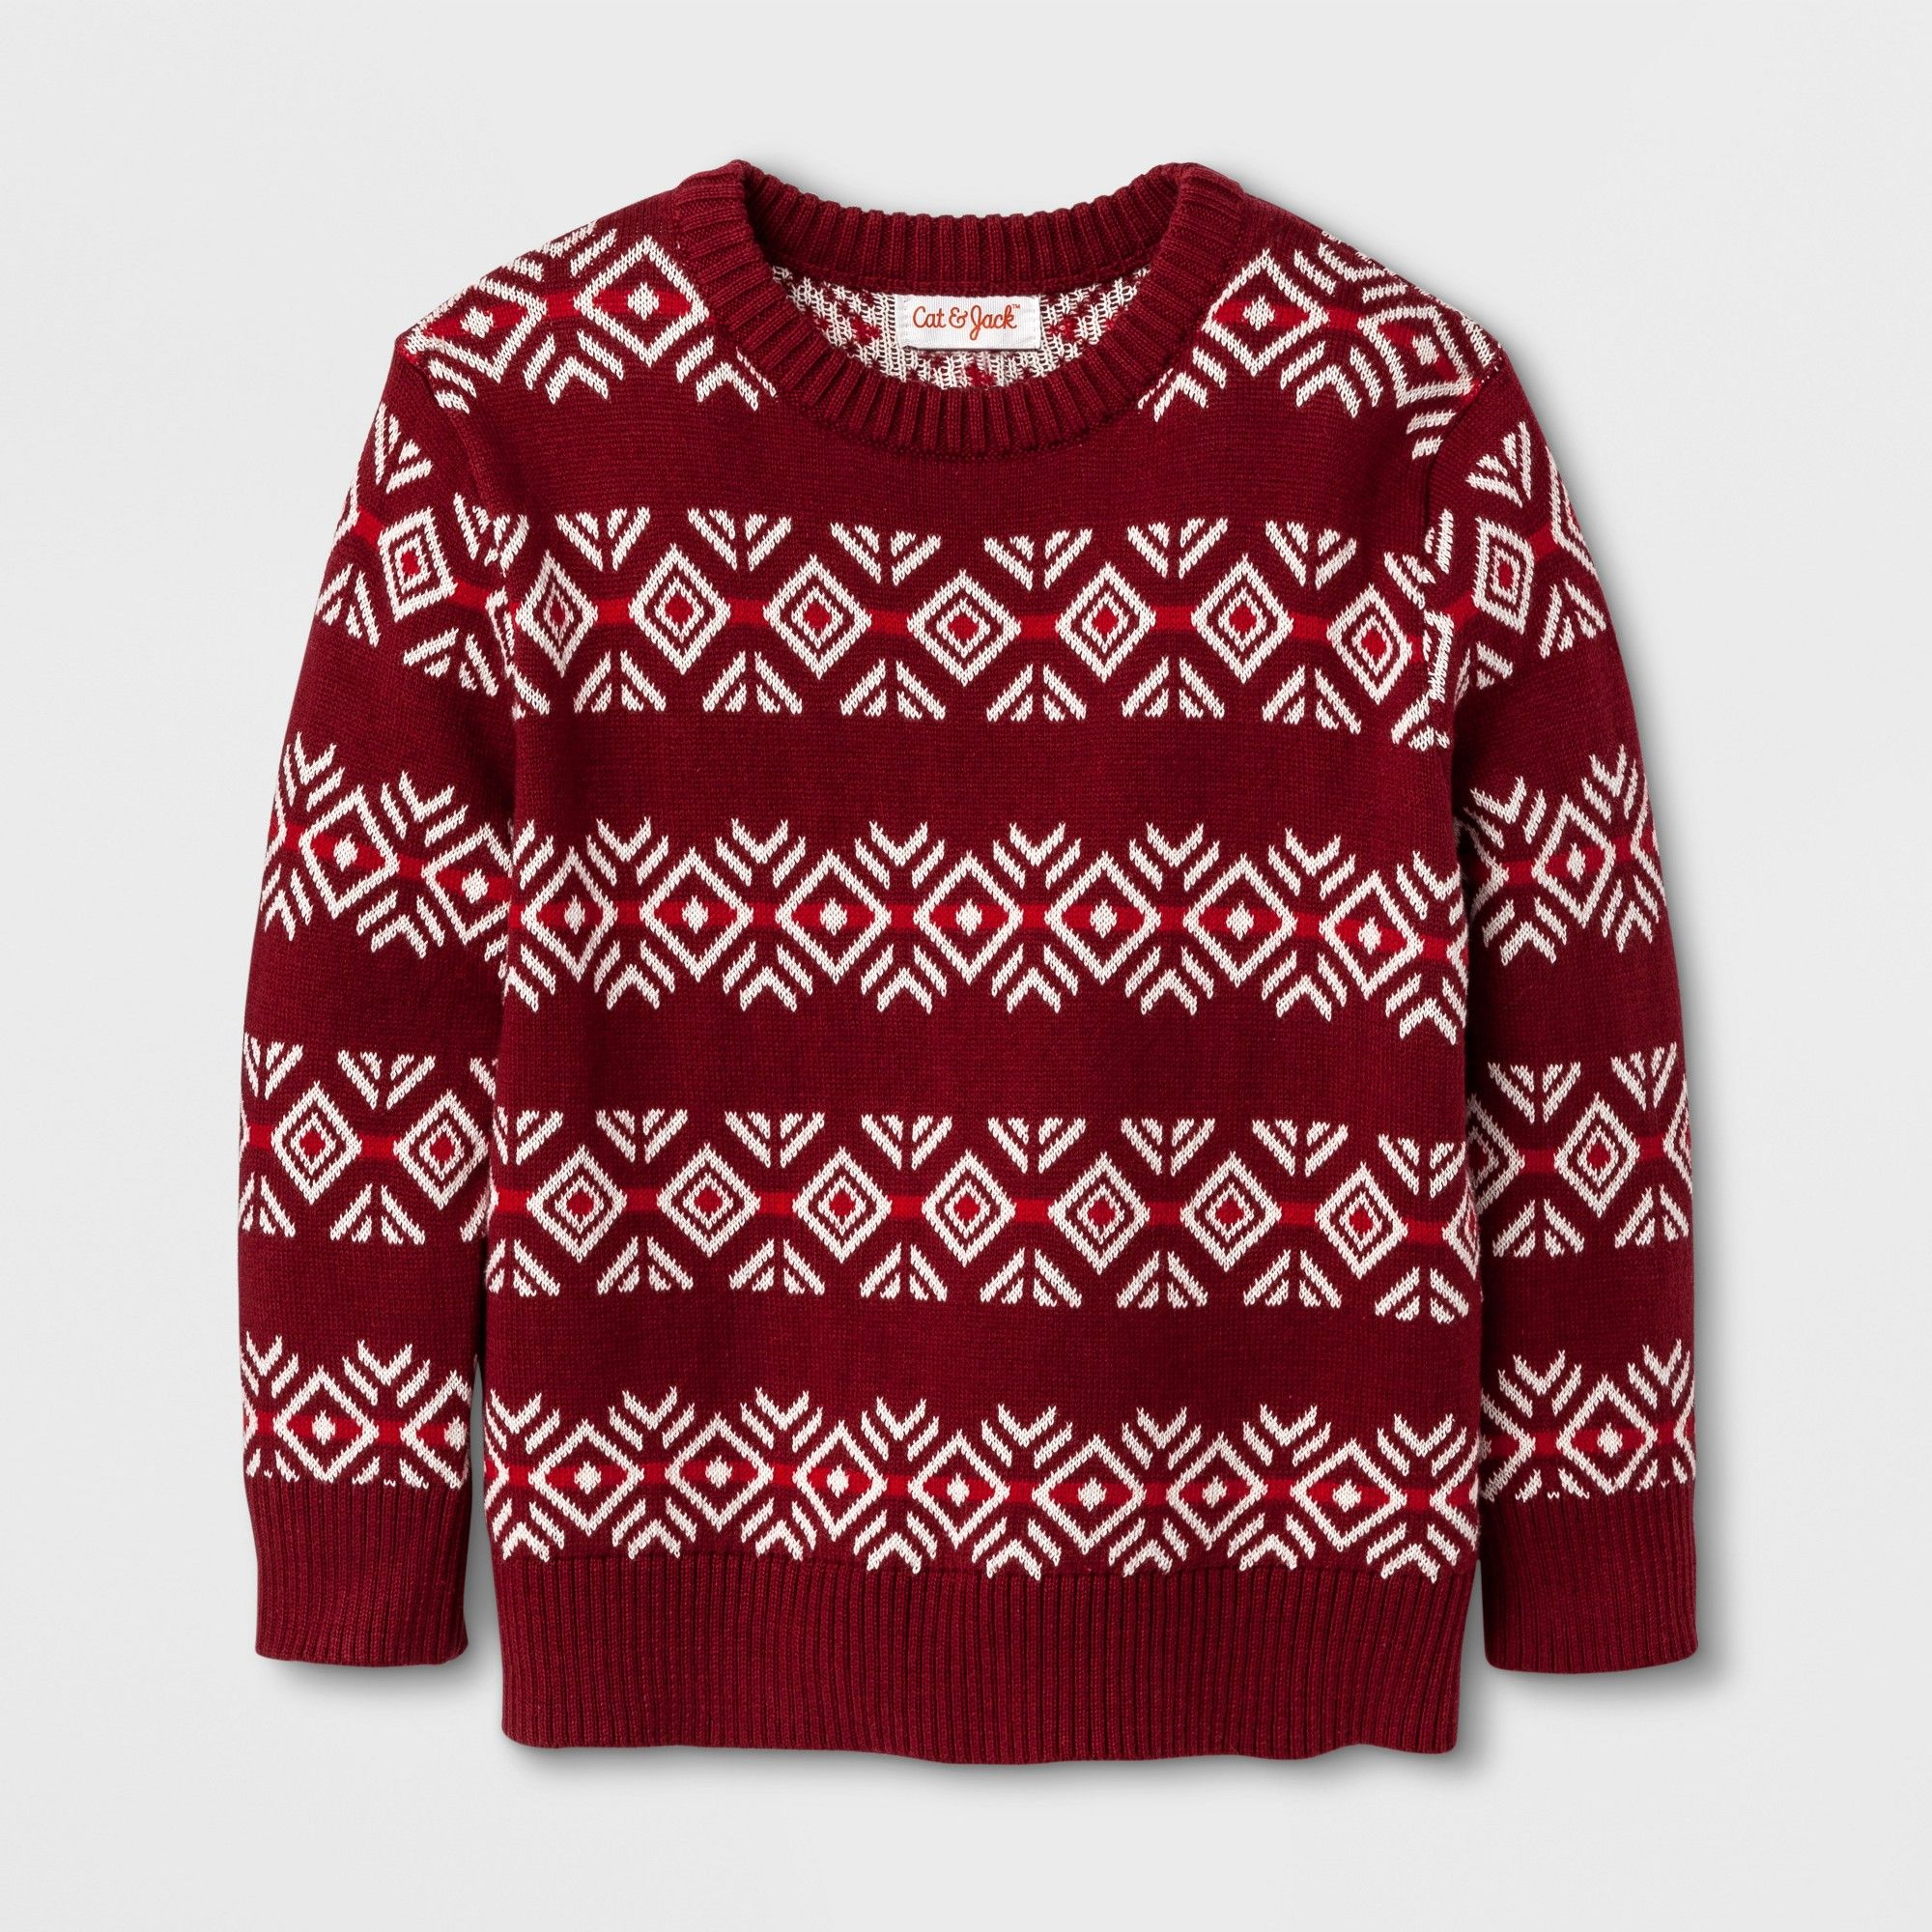 Toddler Boys Crew Neck Pullover Sweater Cat Jack Red Fair Isle